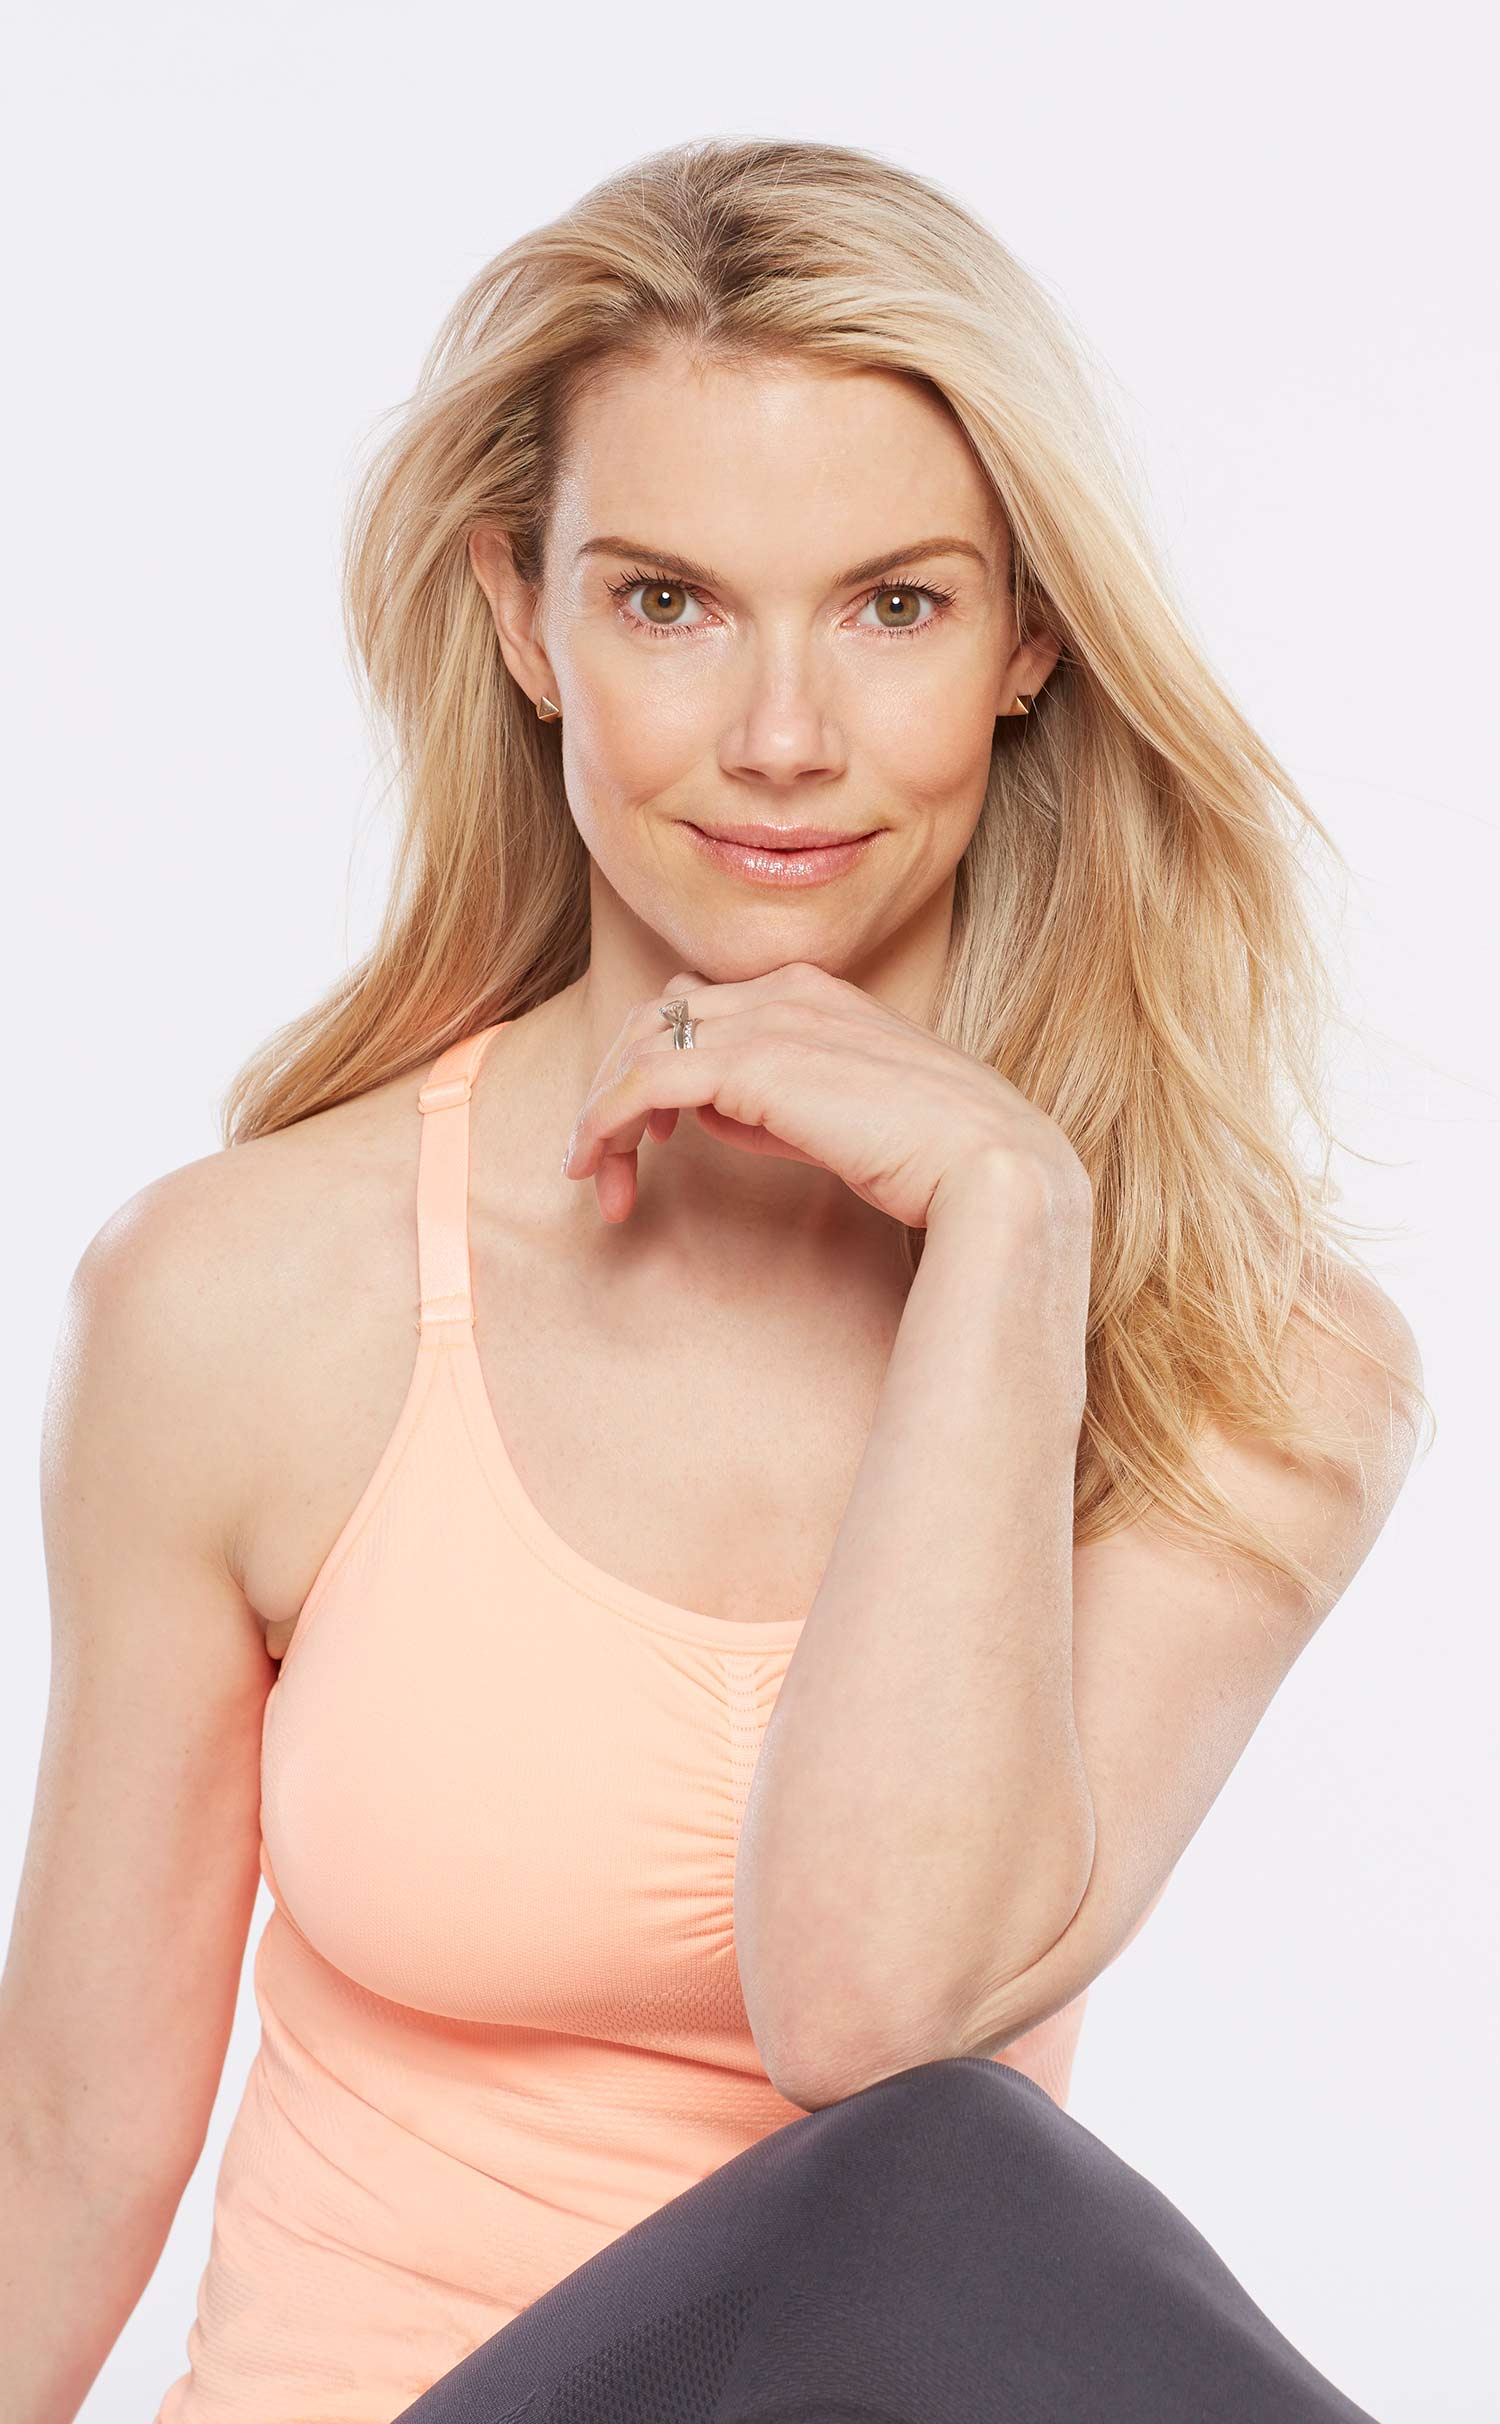 Testimonial and Headshot of Kristin McGee, Celebrity Yoga and Pilates Instructor, Wellness Expert, Author of Chair Yoga